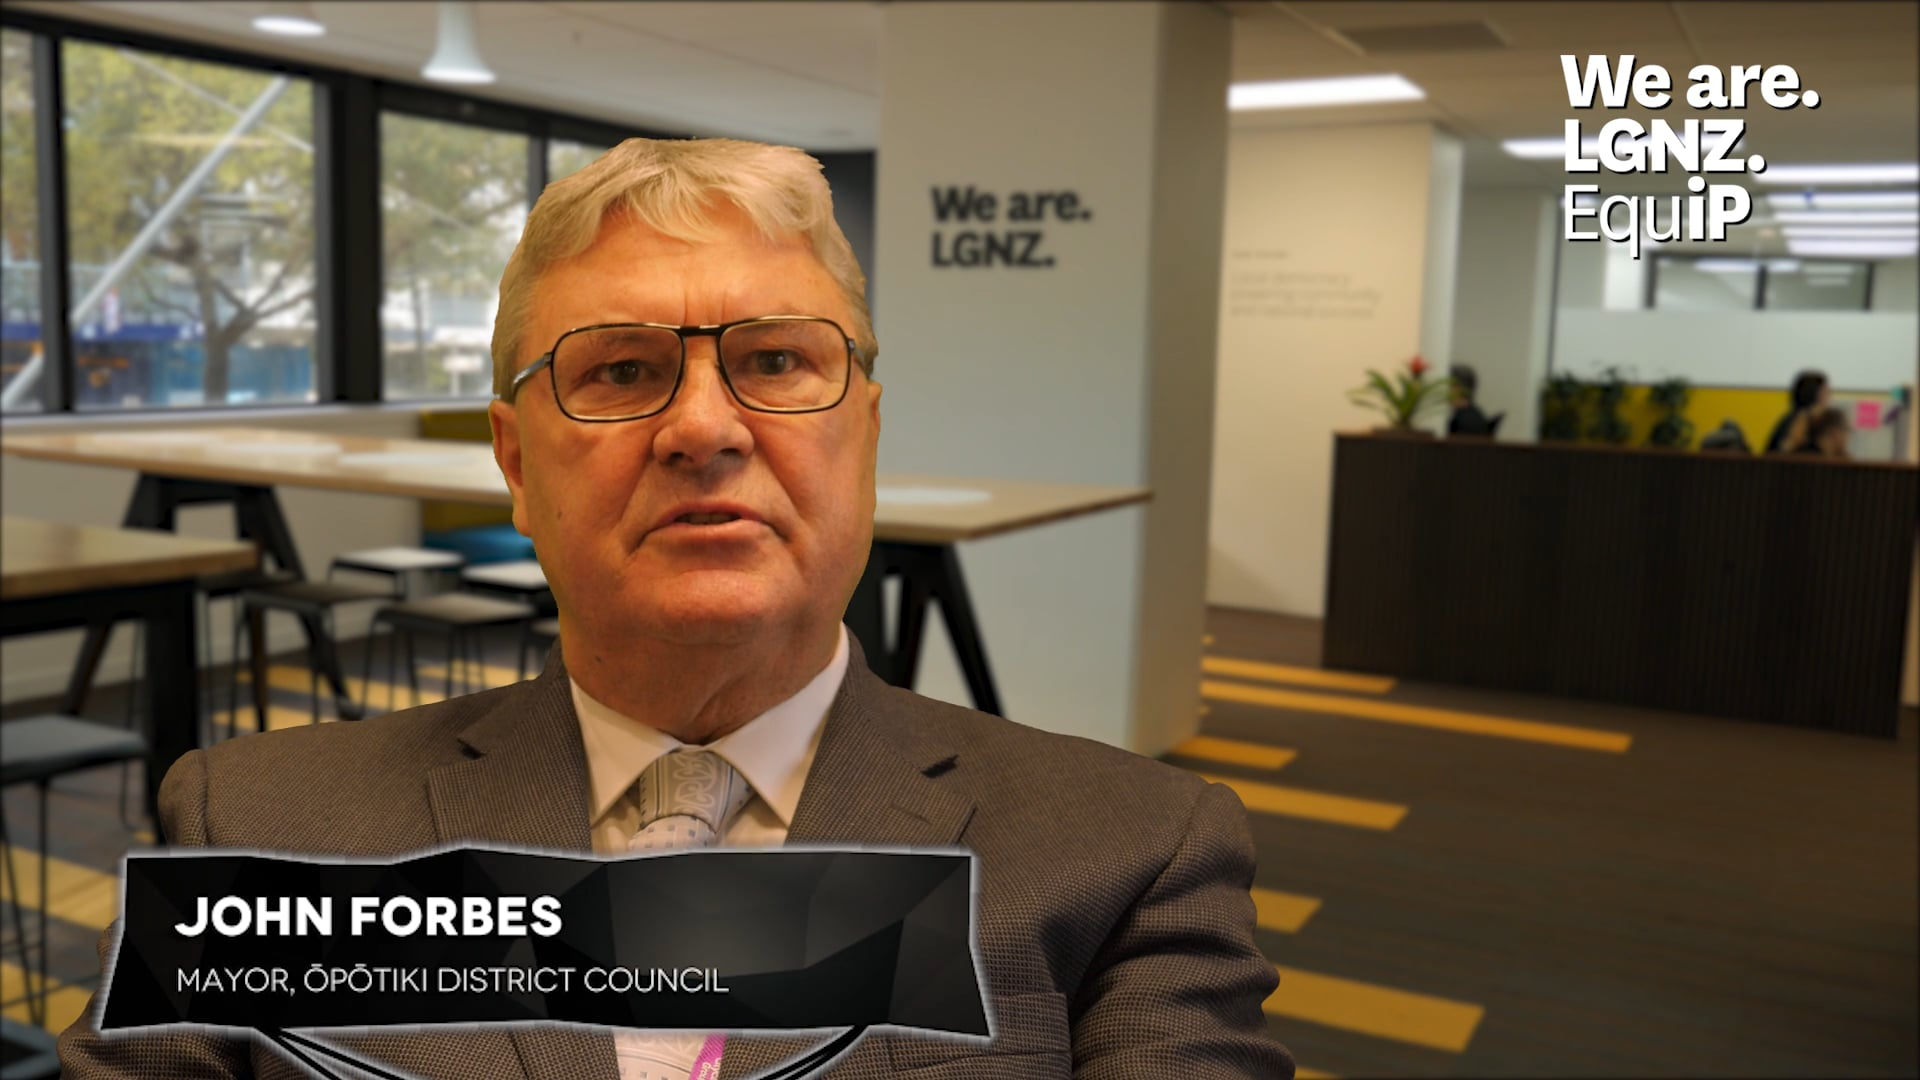 What are the benefits of professional development for elected members - John Forbes